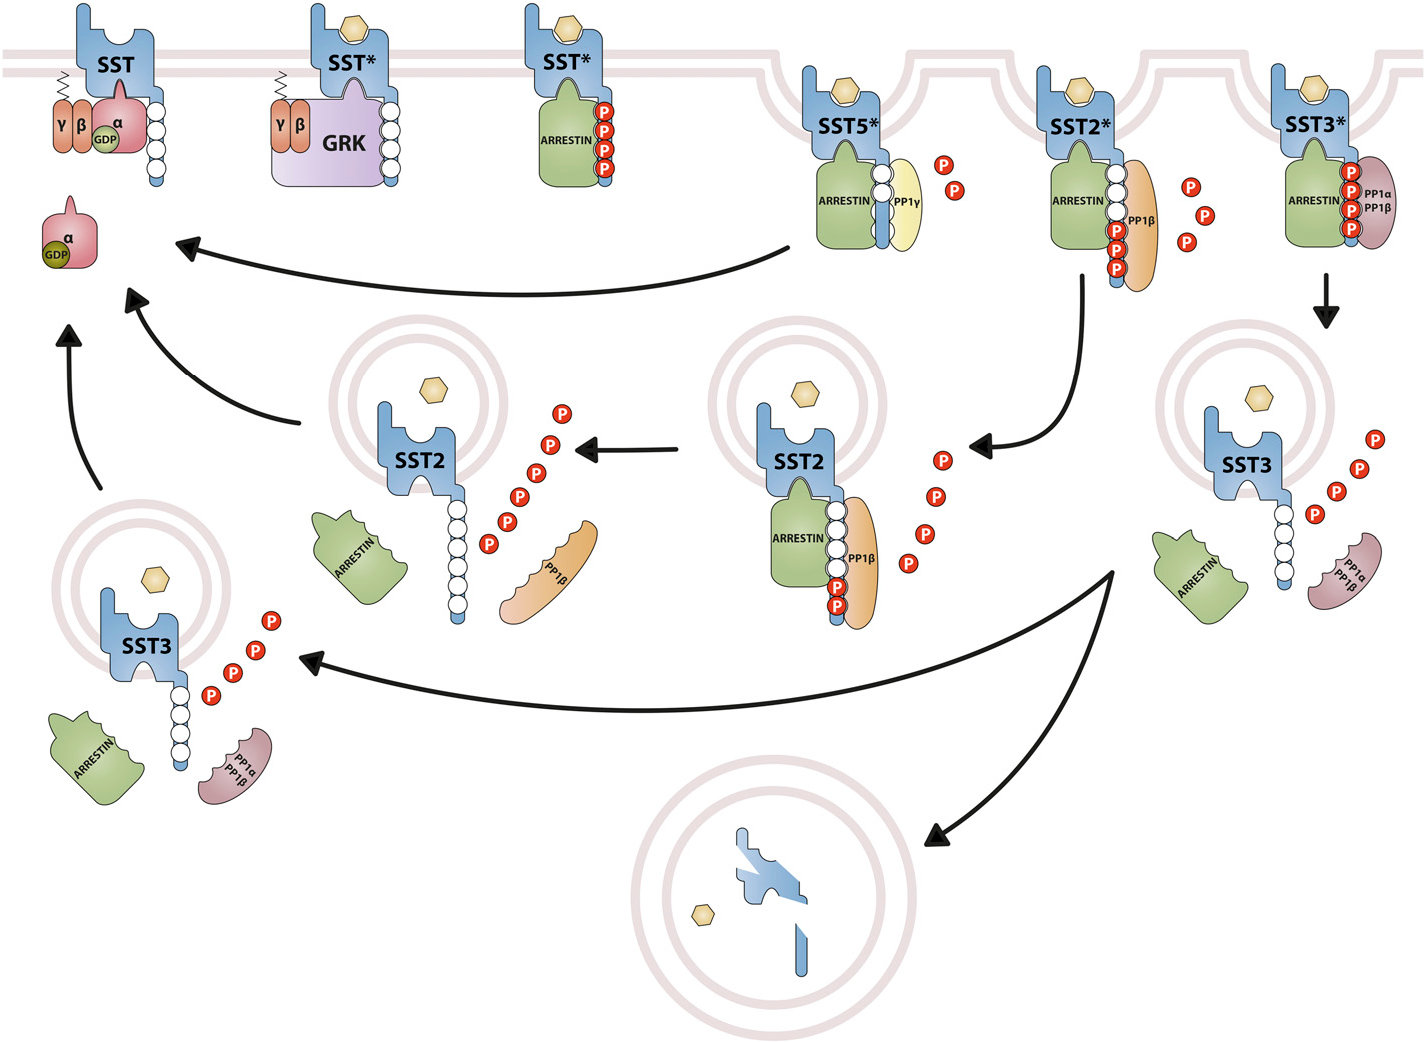 Fig. 20. Differential trafficking of somatostatin receptors. Agonist activation of SSTs triggers activation of the associated heterotrimeric G protein that in turn stimulates a second messenger system. Quenching of this signal involves phosphorylation of the receptor by GRKs. Phosphorylation by GRKs increases the affinity for arrestins, which uncouple the receptor from the G protein and target the receptor to clathrincoated pits for internalization. Return to its resting state requires dissociation or degradation of the agonist, dephosphorylation, and dissociation of arrestin. For SST5, the catalytic PP1g subunit was identified to catalyze S/T dephosphorylation at the plasma membrane within seconds to minutes after agonist removal. SST5 forms unstable complexes with arrestins that are rapidly disrupted. After dephosphorylation, SST5 is either resensitized at the plasma membrane or recycled back through an endosomal pathway. For SST2, the catalytic PP1b subunit was identified to catalyze S/T dephosphorylation. SST2 forms stable complexes with arrestins that cointernalize into the same endocytic vesicles. This dephosphorylation process is initiated at the plasmamembrane and continues along the endosomal pathway. PP1b-mediated dephosphorylation promotes dissociation of arrestins and, hence, facilitates quenching of arrestin-dependent signaling. Subsequently, SST2 is recycled back through an endosomal pathway to the plasma membrane. For SST3, the catalytic PP1a/b subunits were identified to catalyze S/T dephosphorylation at the plasma membrane within seconds to minutes after agonist removal. SST3 forms unstable complexes with arrestins that are rapidly disrupted. After dephosphorylation, SST3 is either subject to lysosomal degradation or recycled back to the plasma membrane through an endosomal pathway.